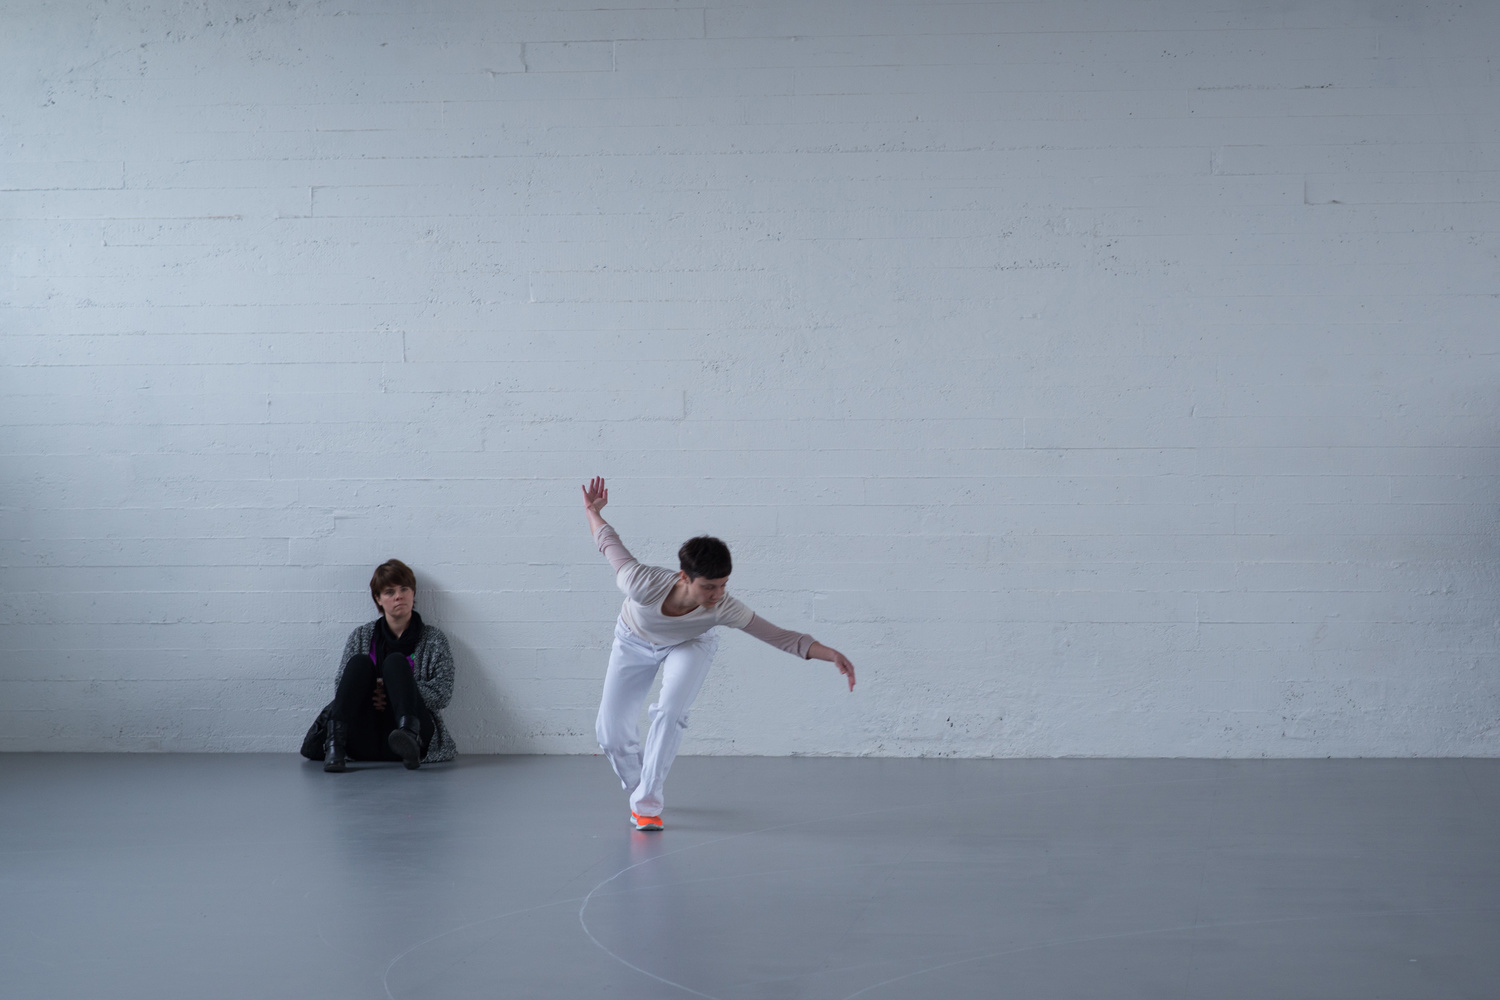 Anne Teresa De Keersmaeker. Work/Travail/Arbeid. 2015. Performed May 2015, WIELS Contemporary Art Centre, Brussels. Photo: Anne Van Aerschot. © Anne Van Aerschot